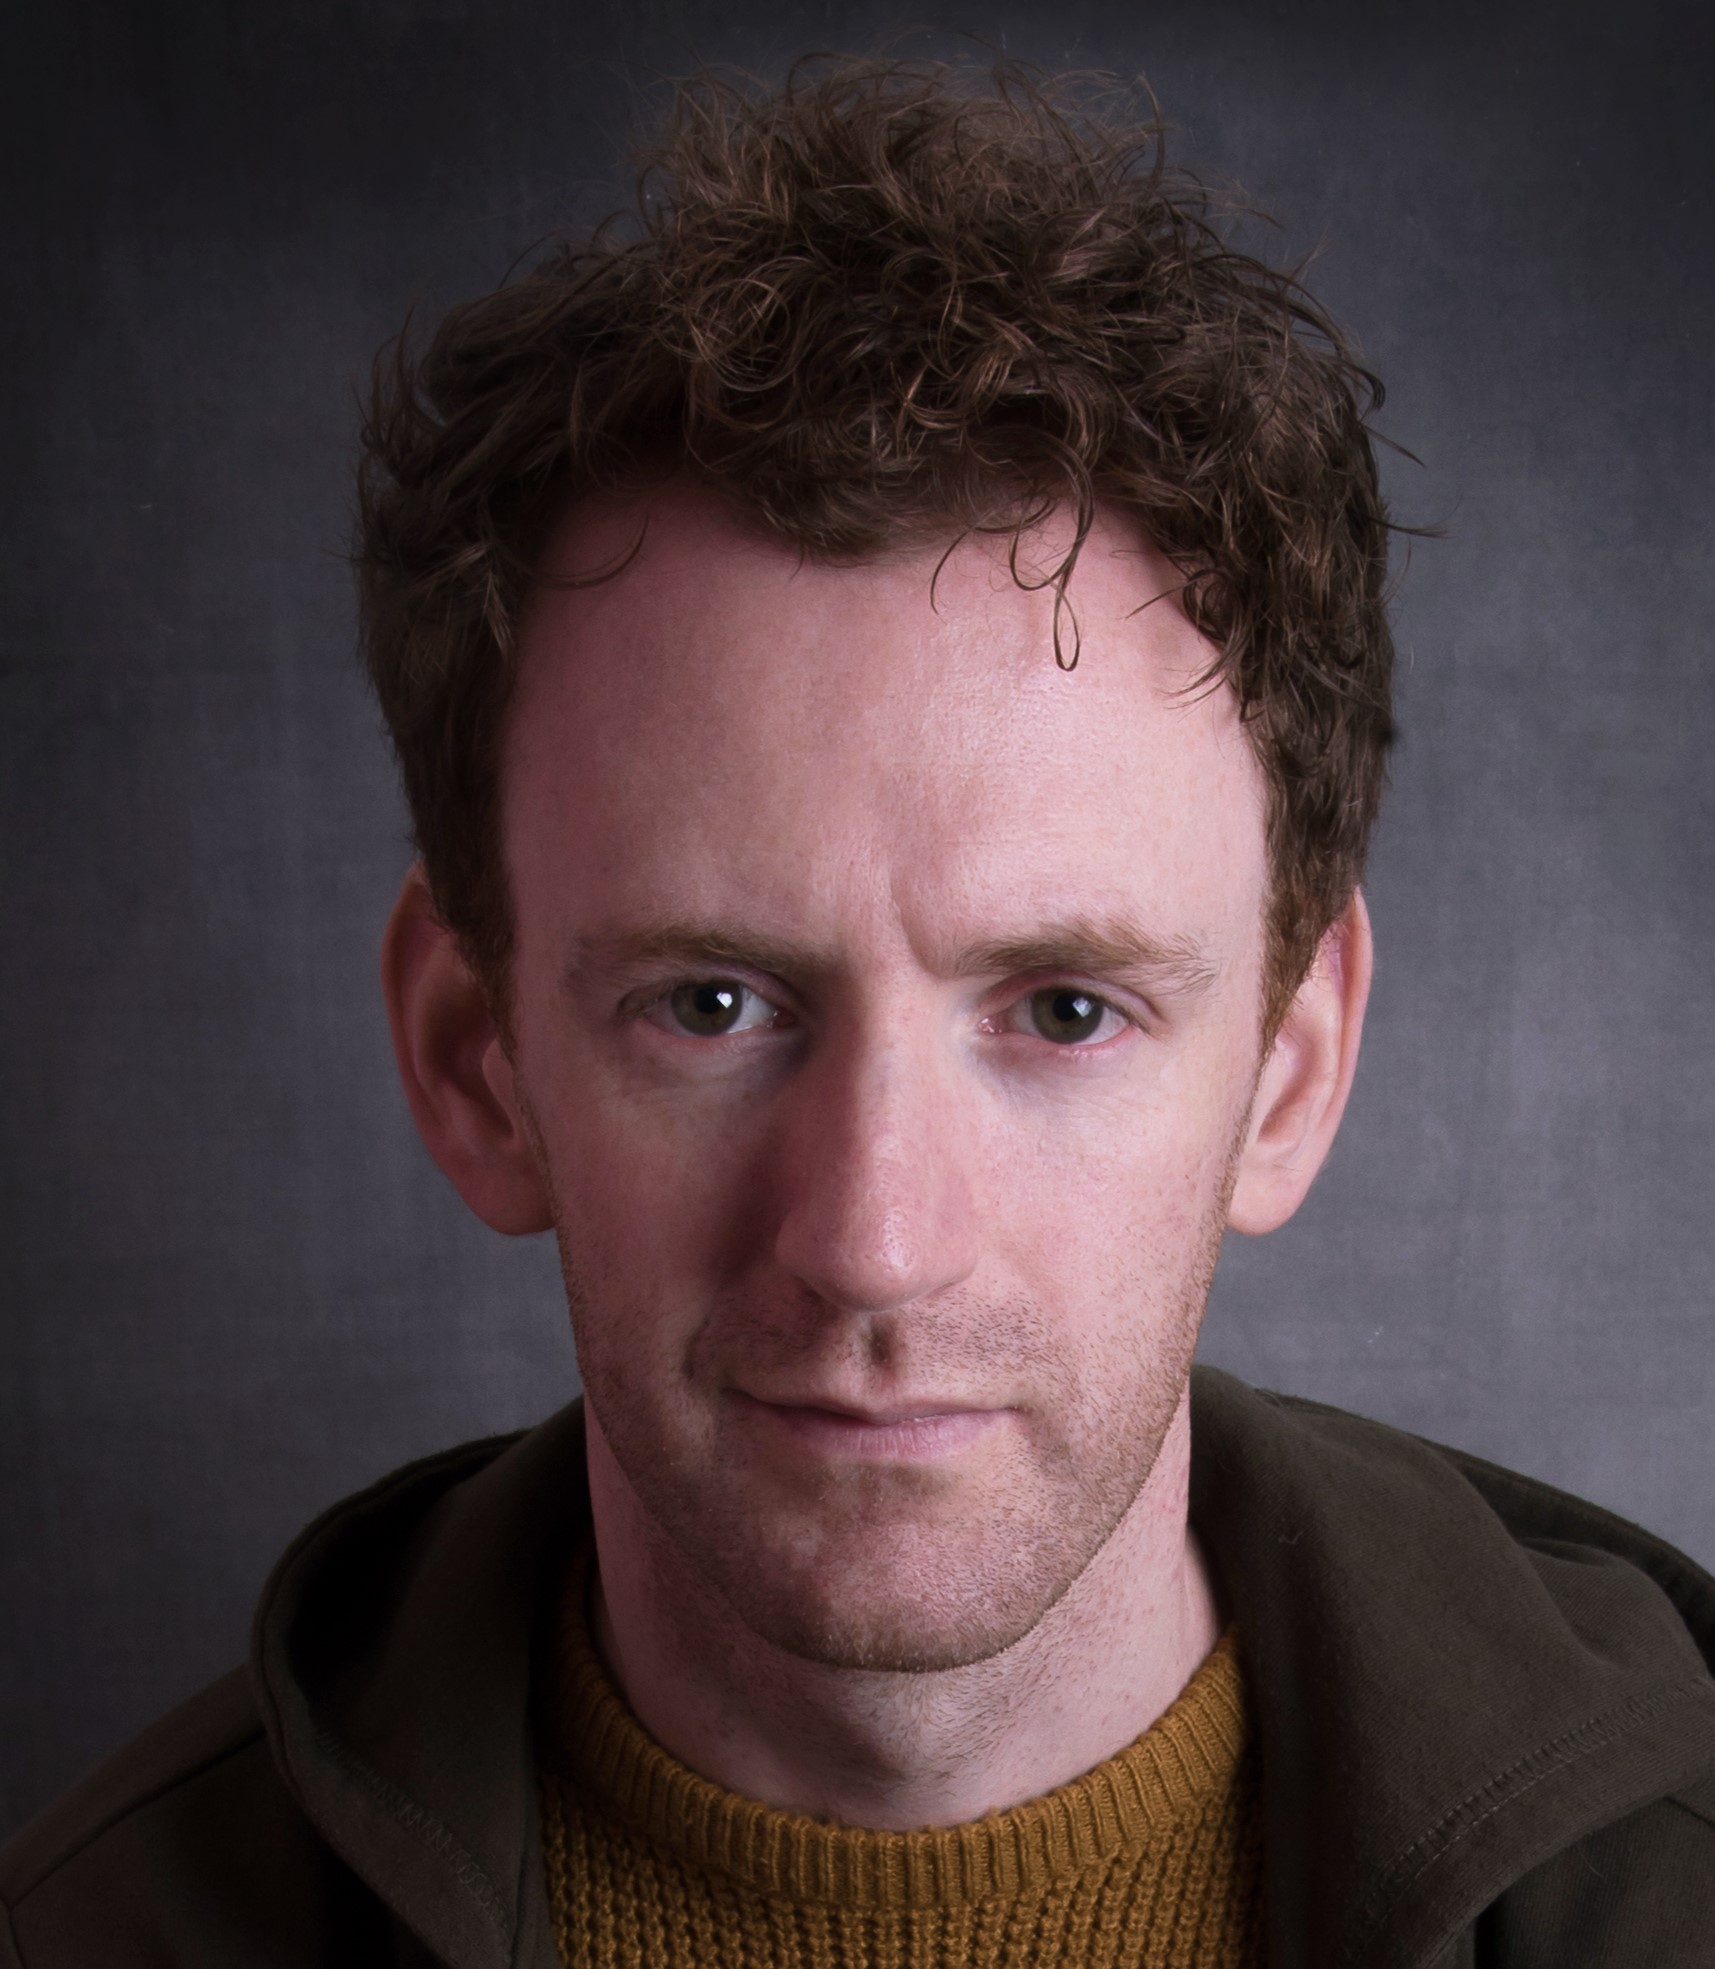 Chrisrankin